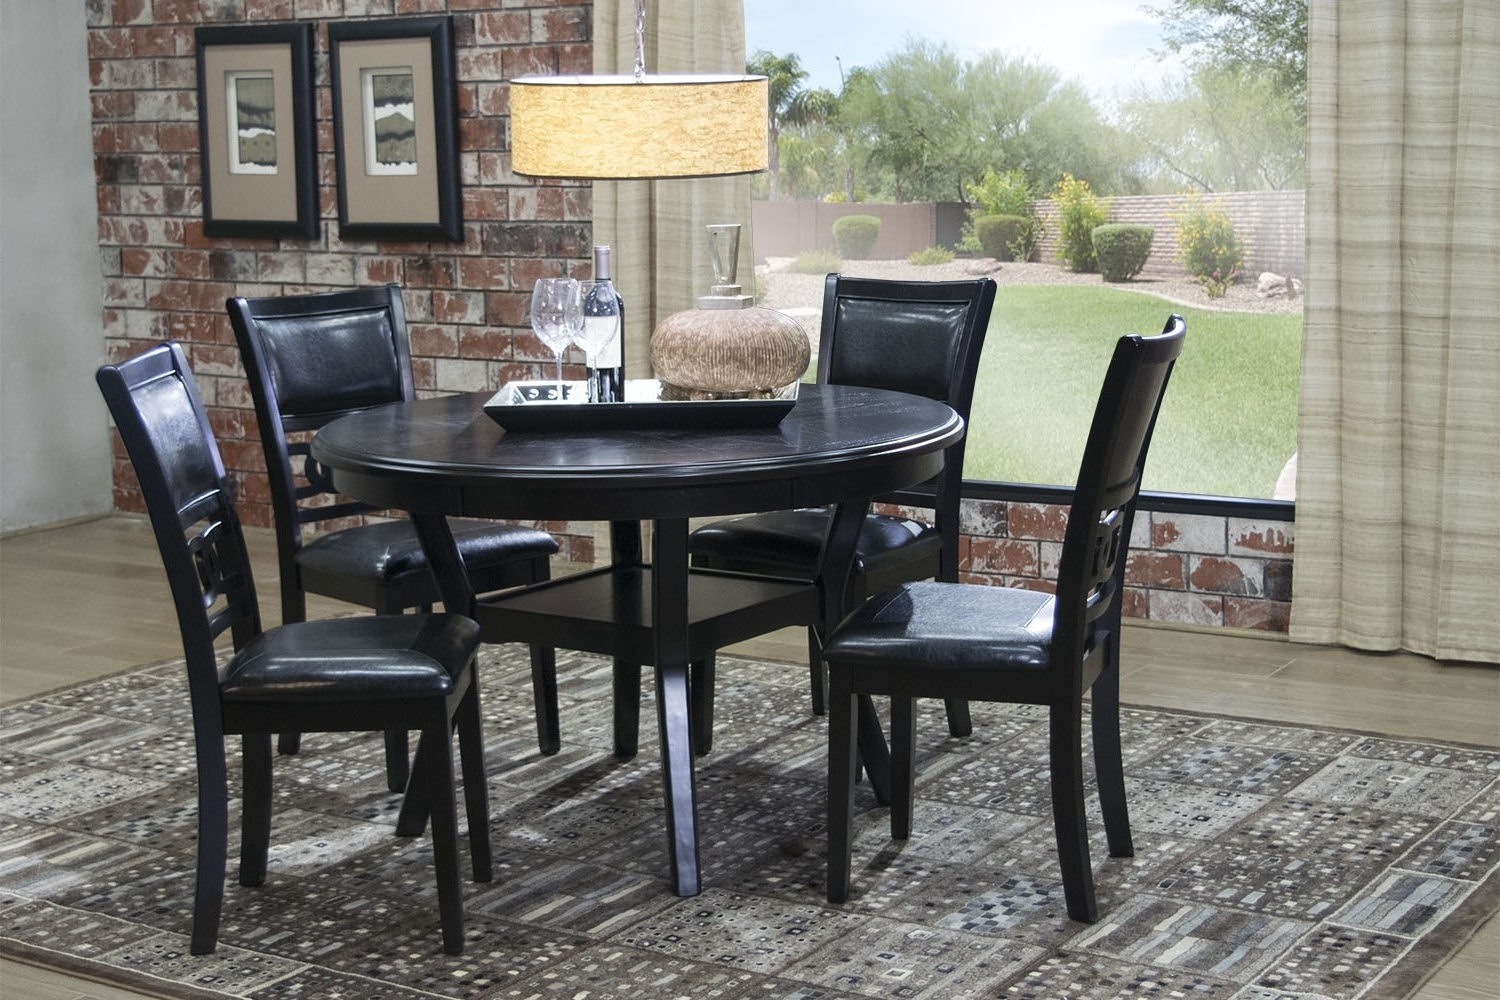 Save Mor Online And In Store With Jefferson Extension Round Dining Tables (View 23 of 25)